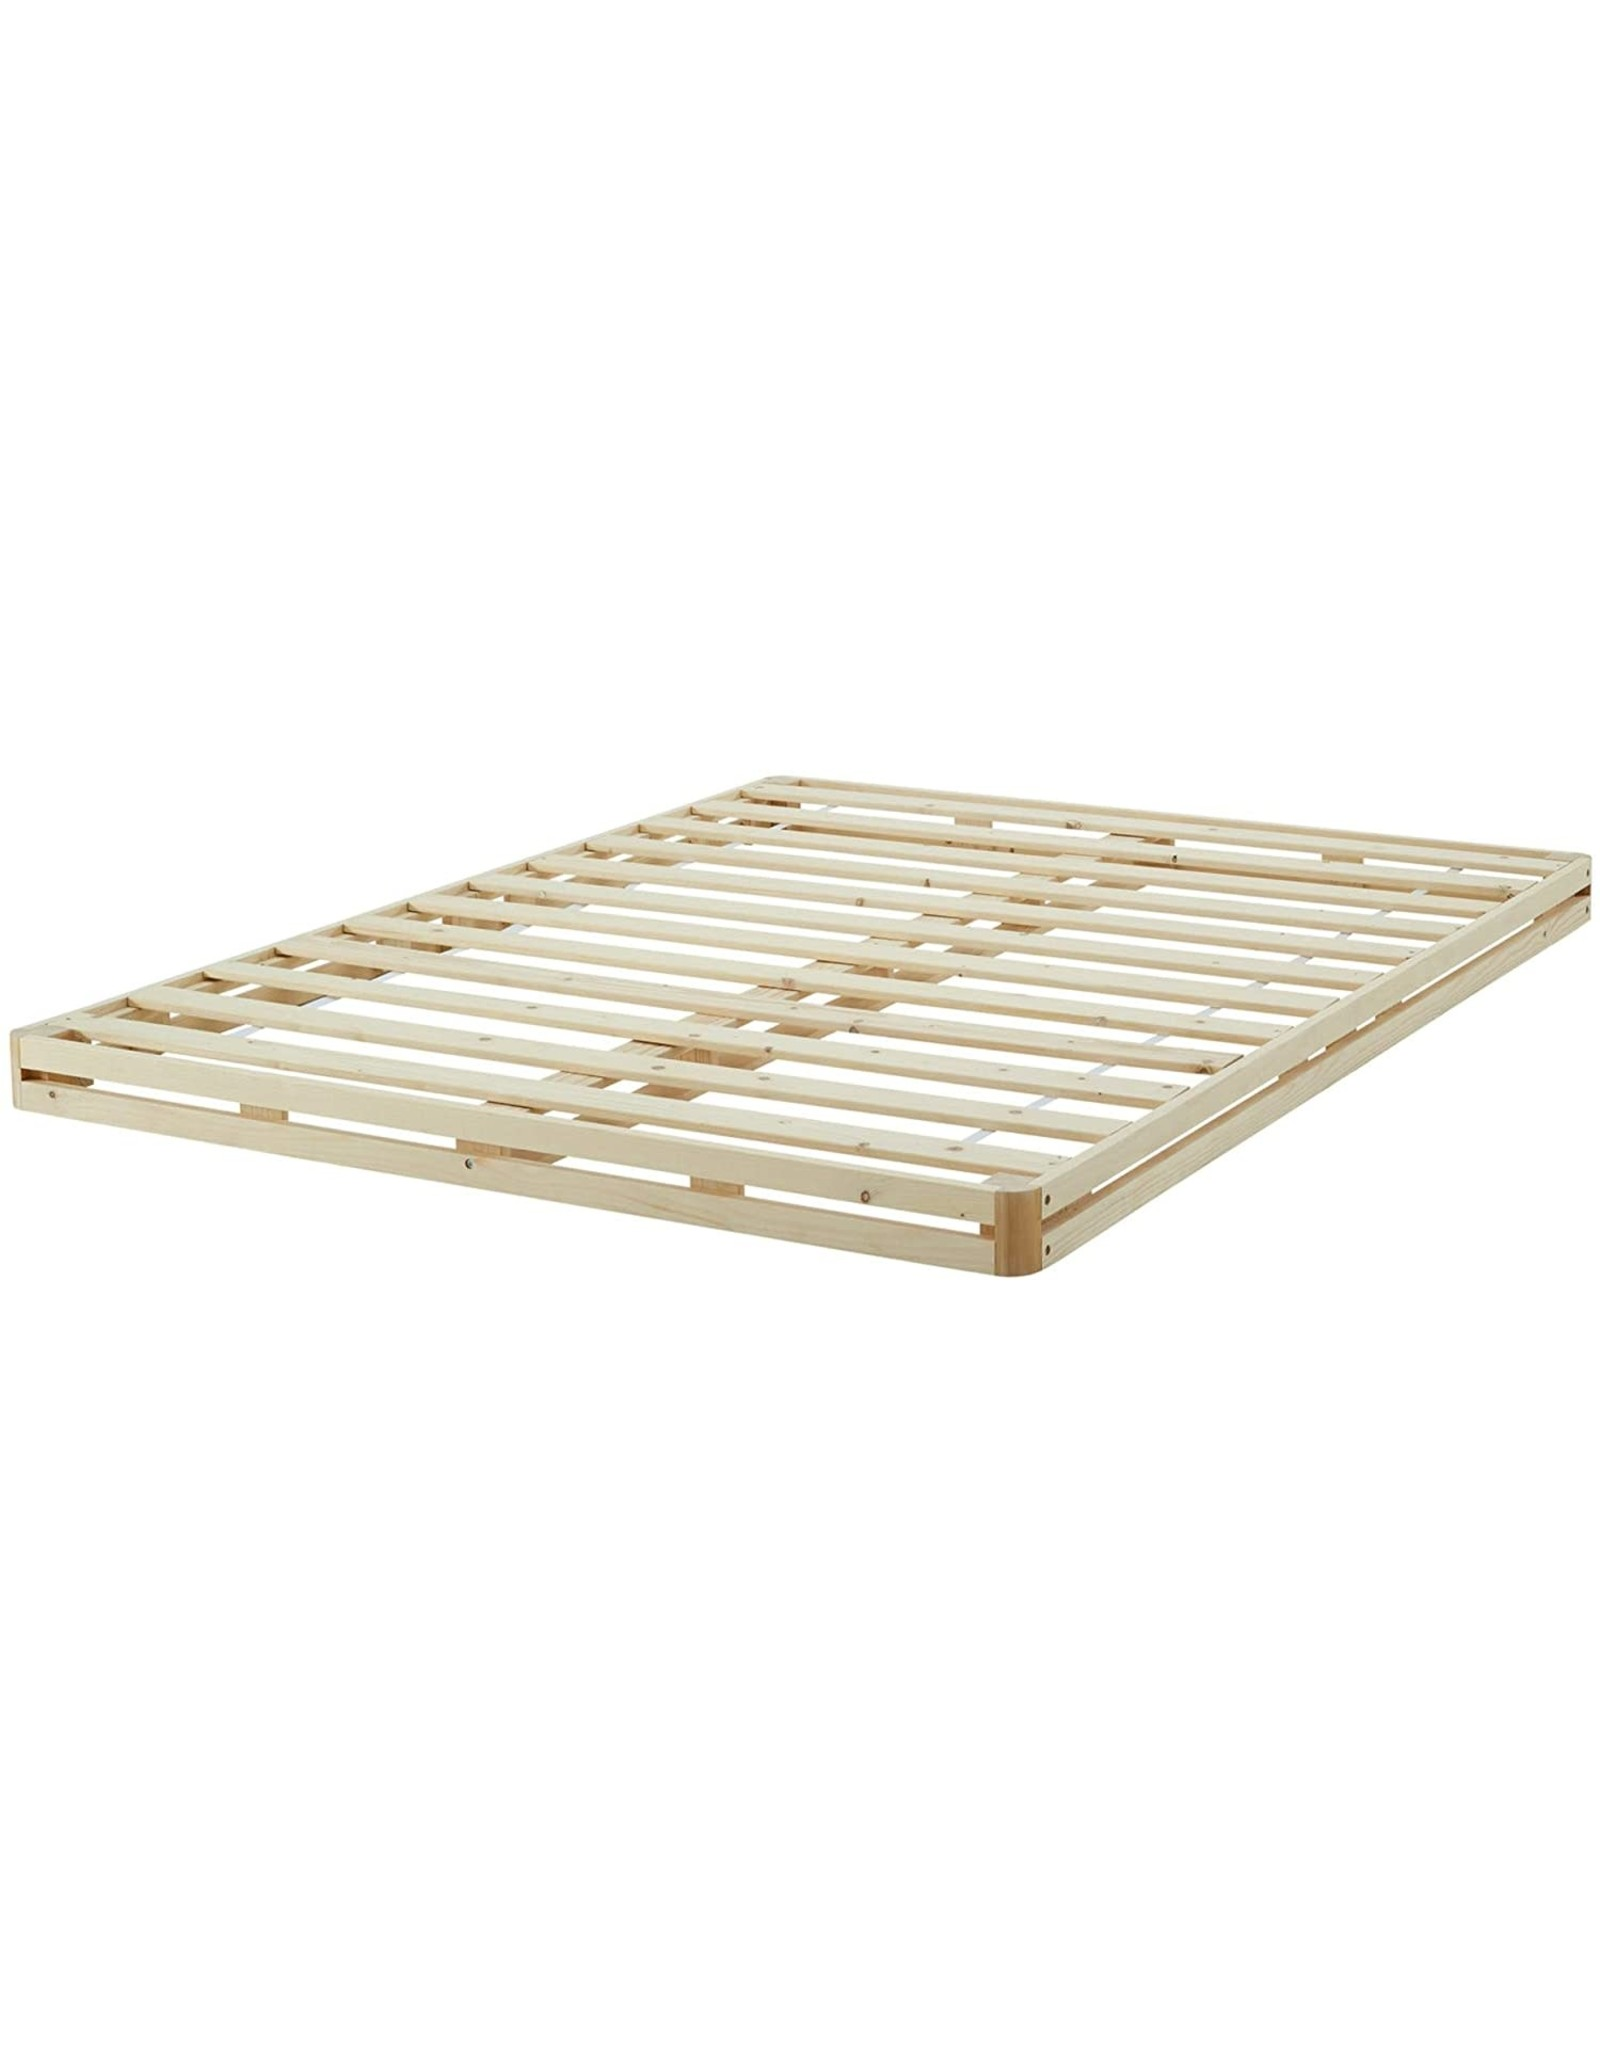 Classic Brands Classic Brands Instant Foundation Low Profile 4-Inch Box-Spring Replacement, Full